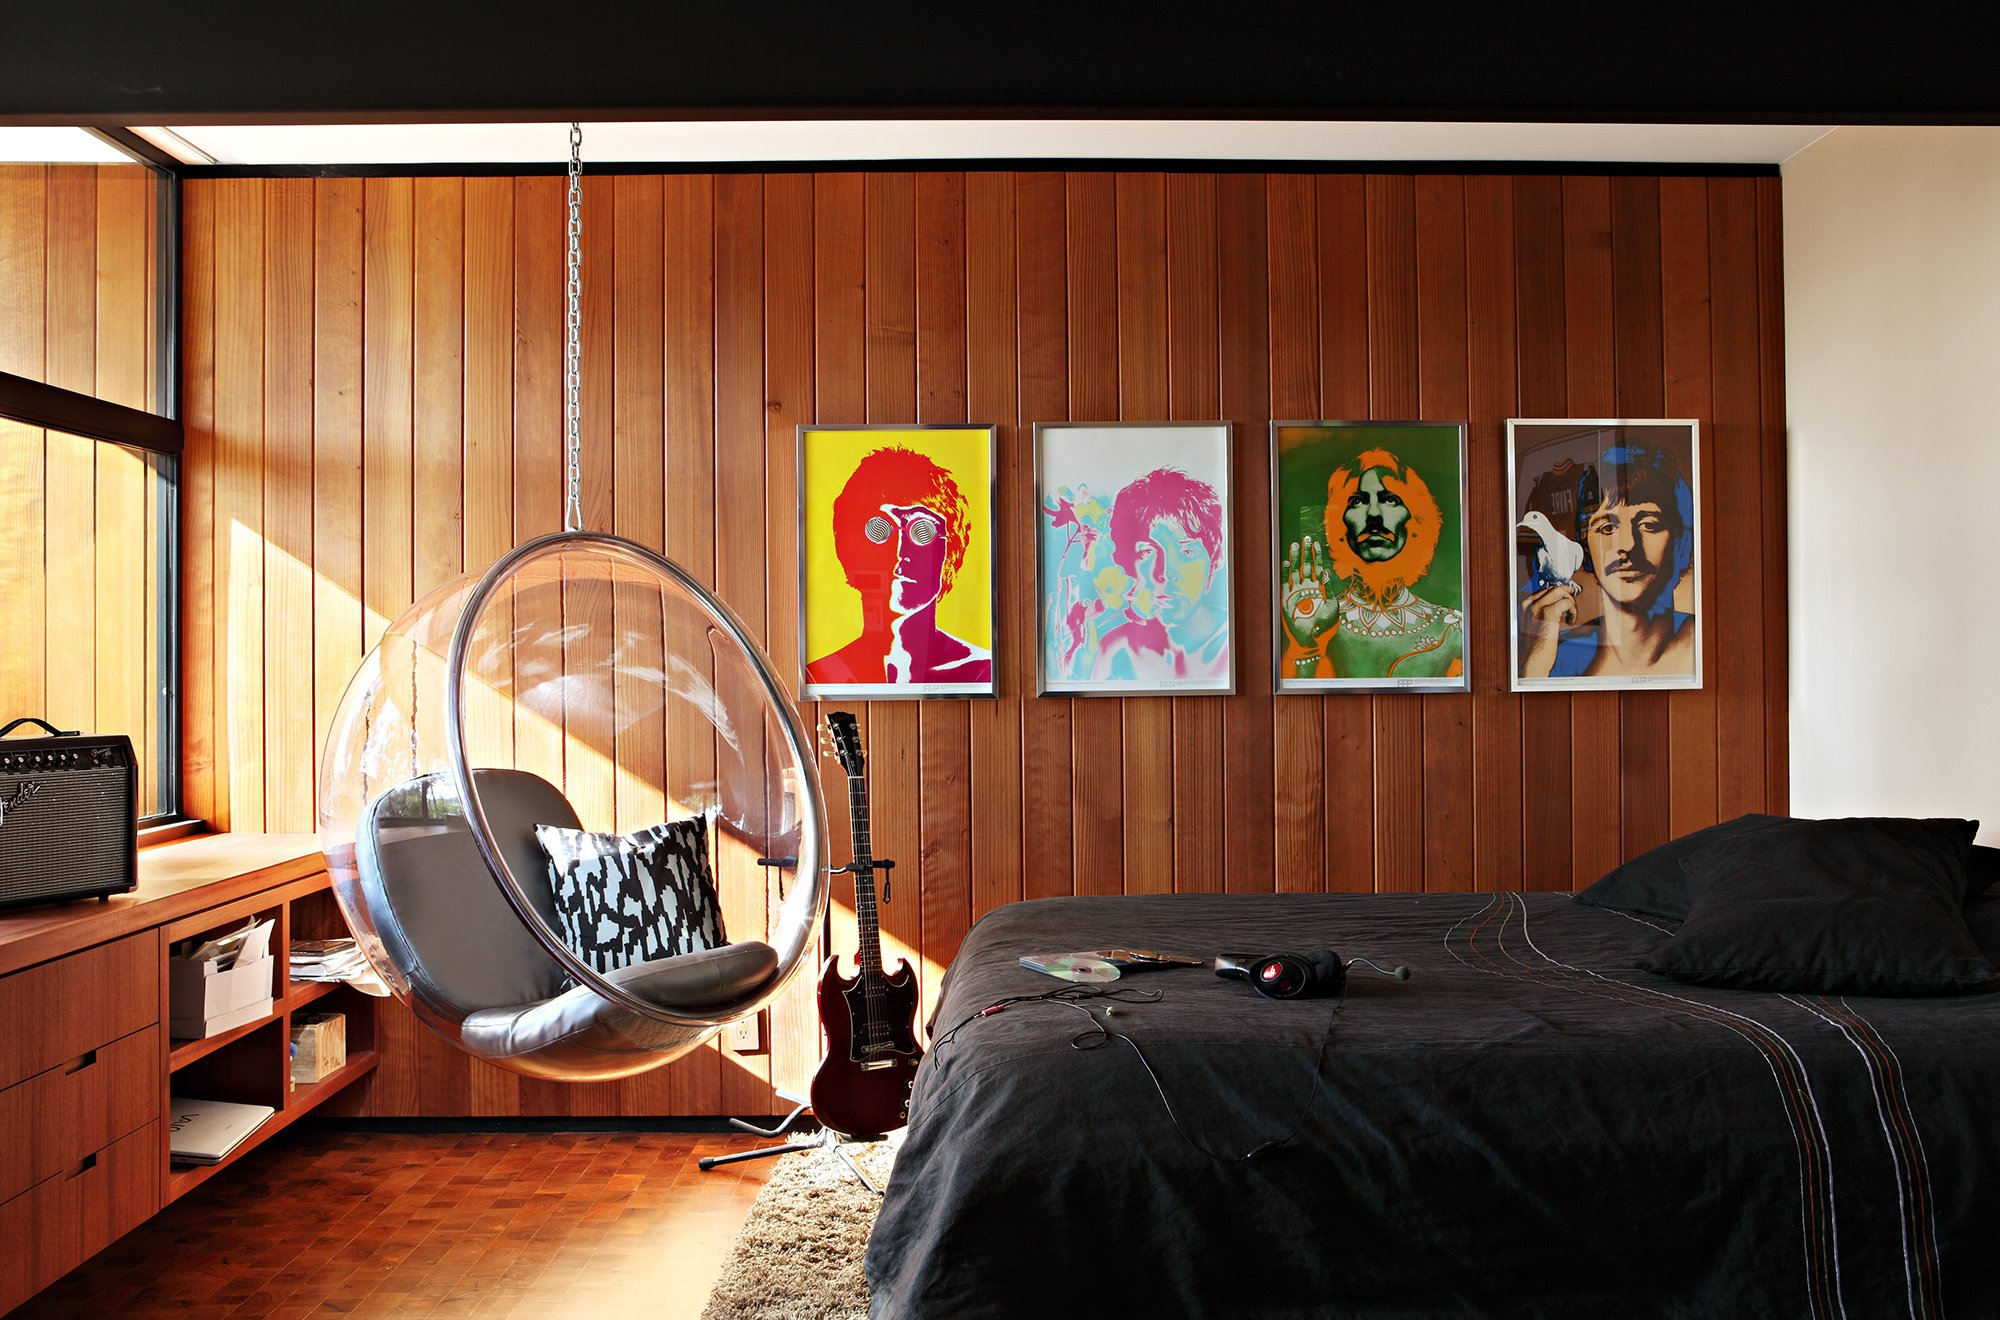 Bed interior chair bedroom design room beatles wallpaper 2000x1320 248118 wallpaperup - Decor for teenage bedroom ...